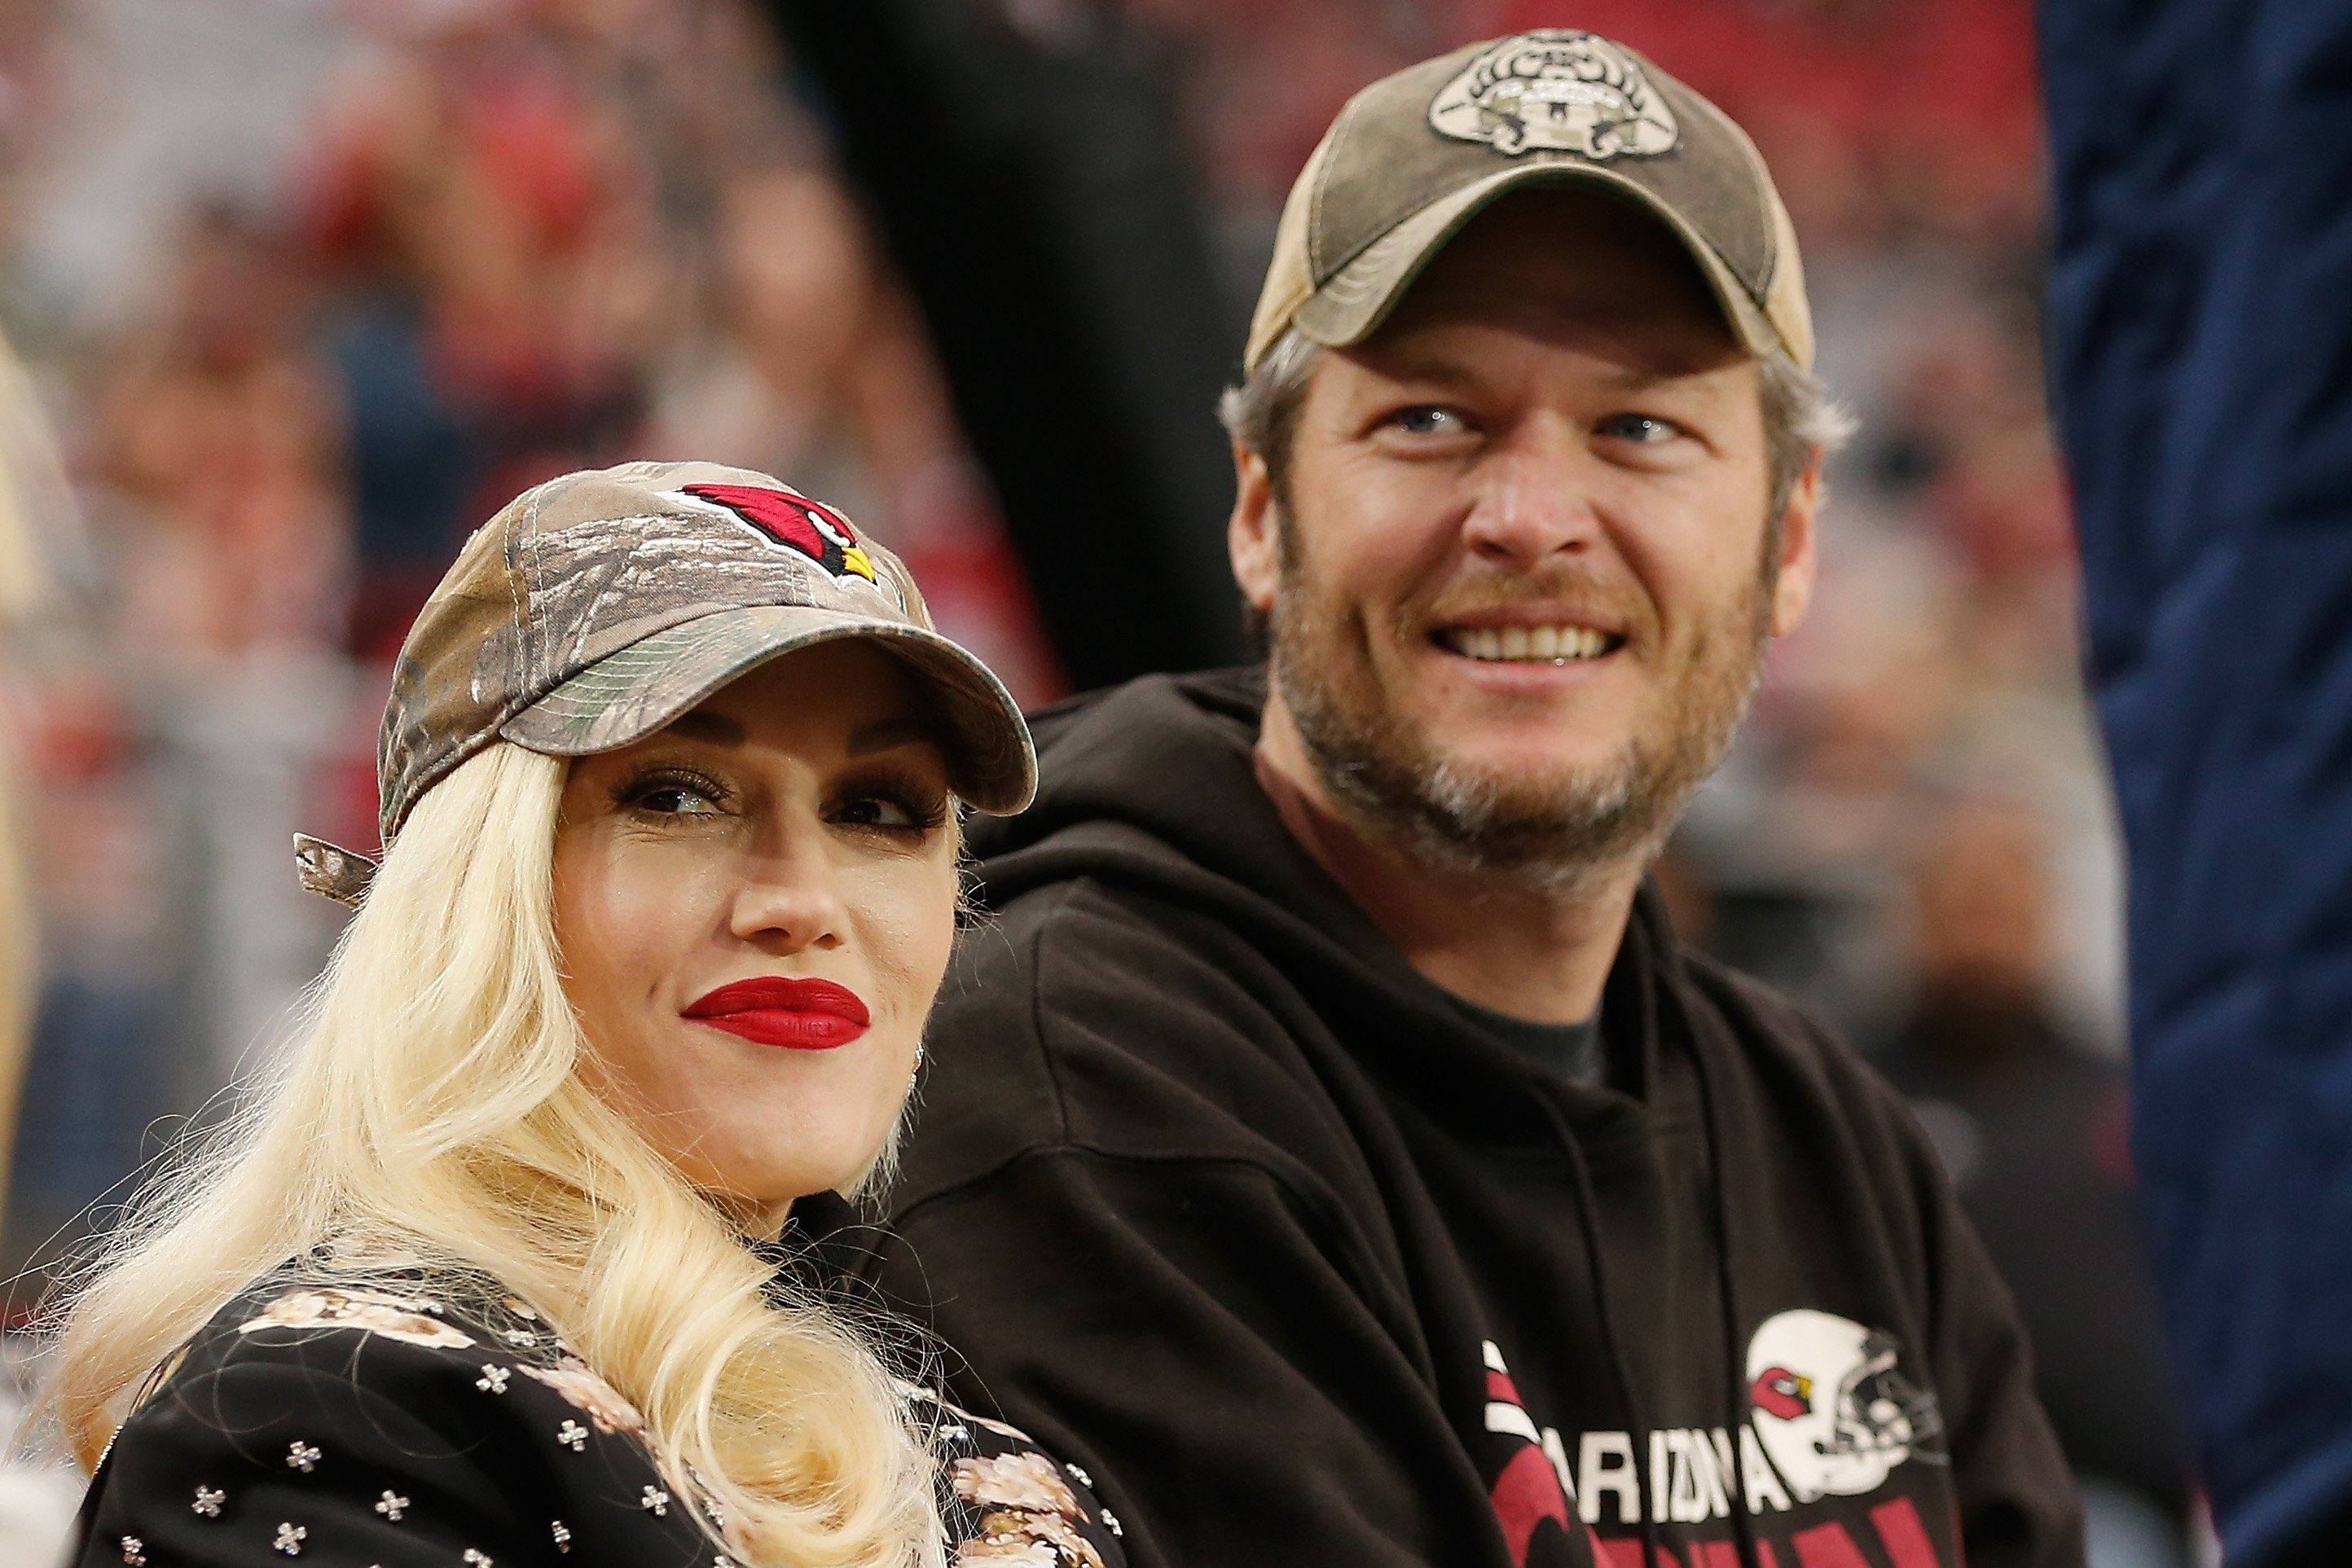 Gwen Stefani and Blake Shelton attend an NFL game in Arizona, 27 December, 2015. | Photo: Getty Images.